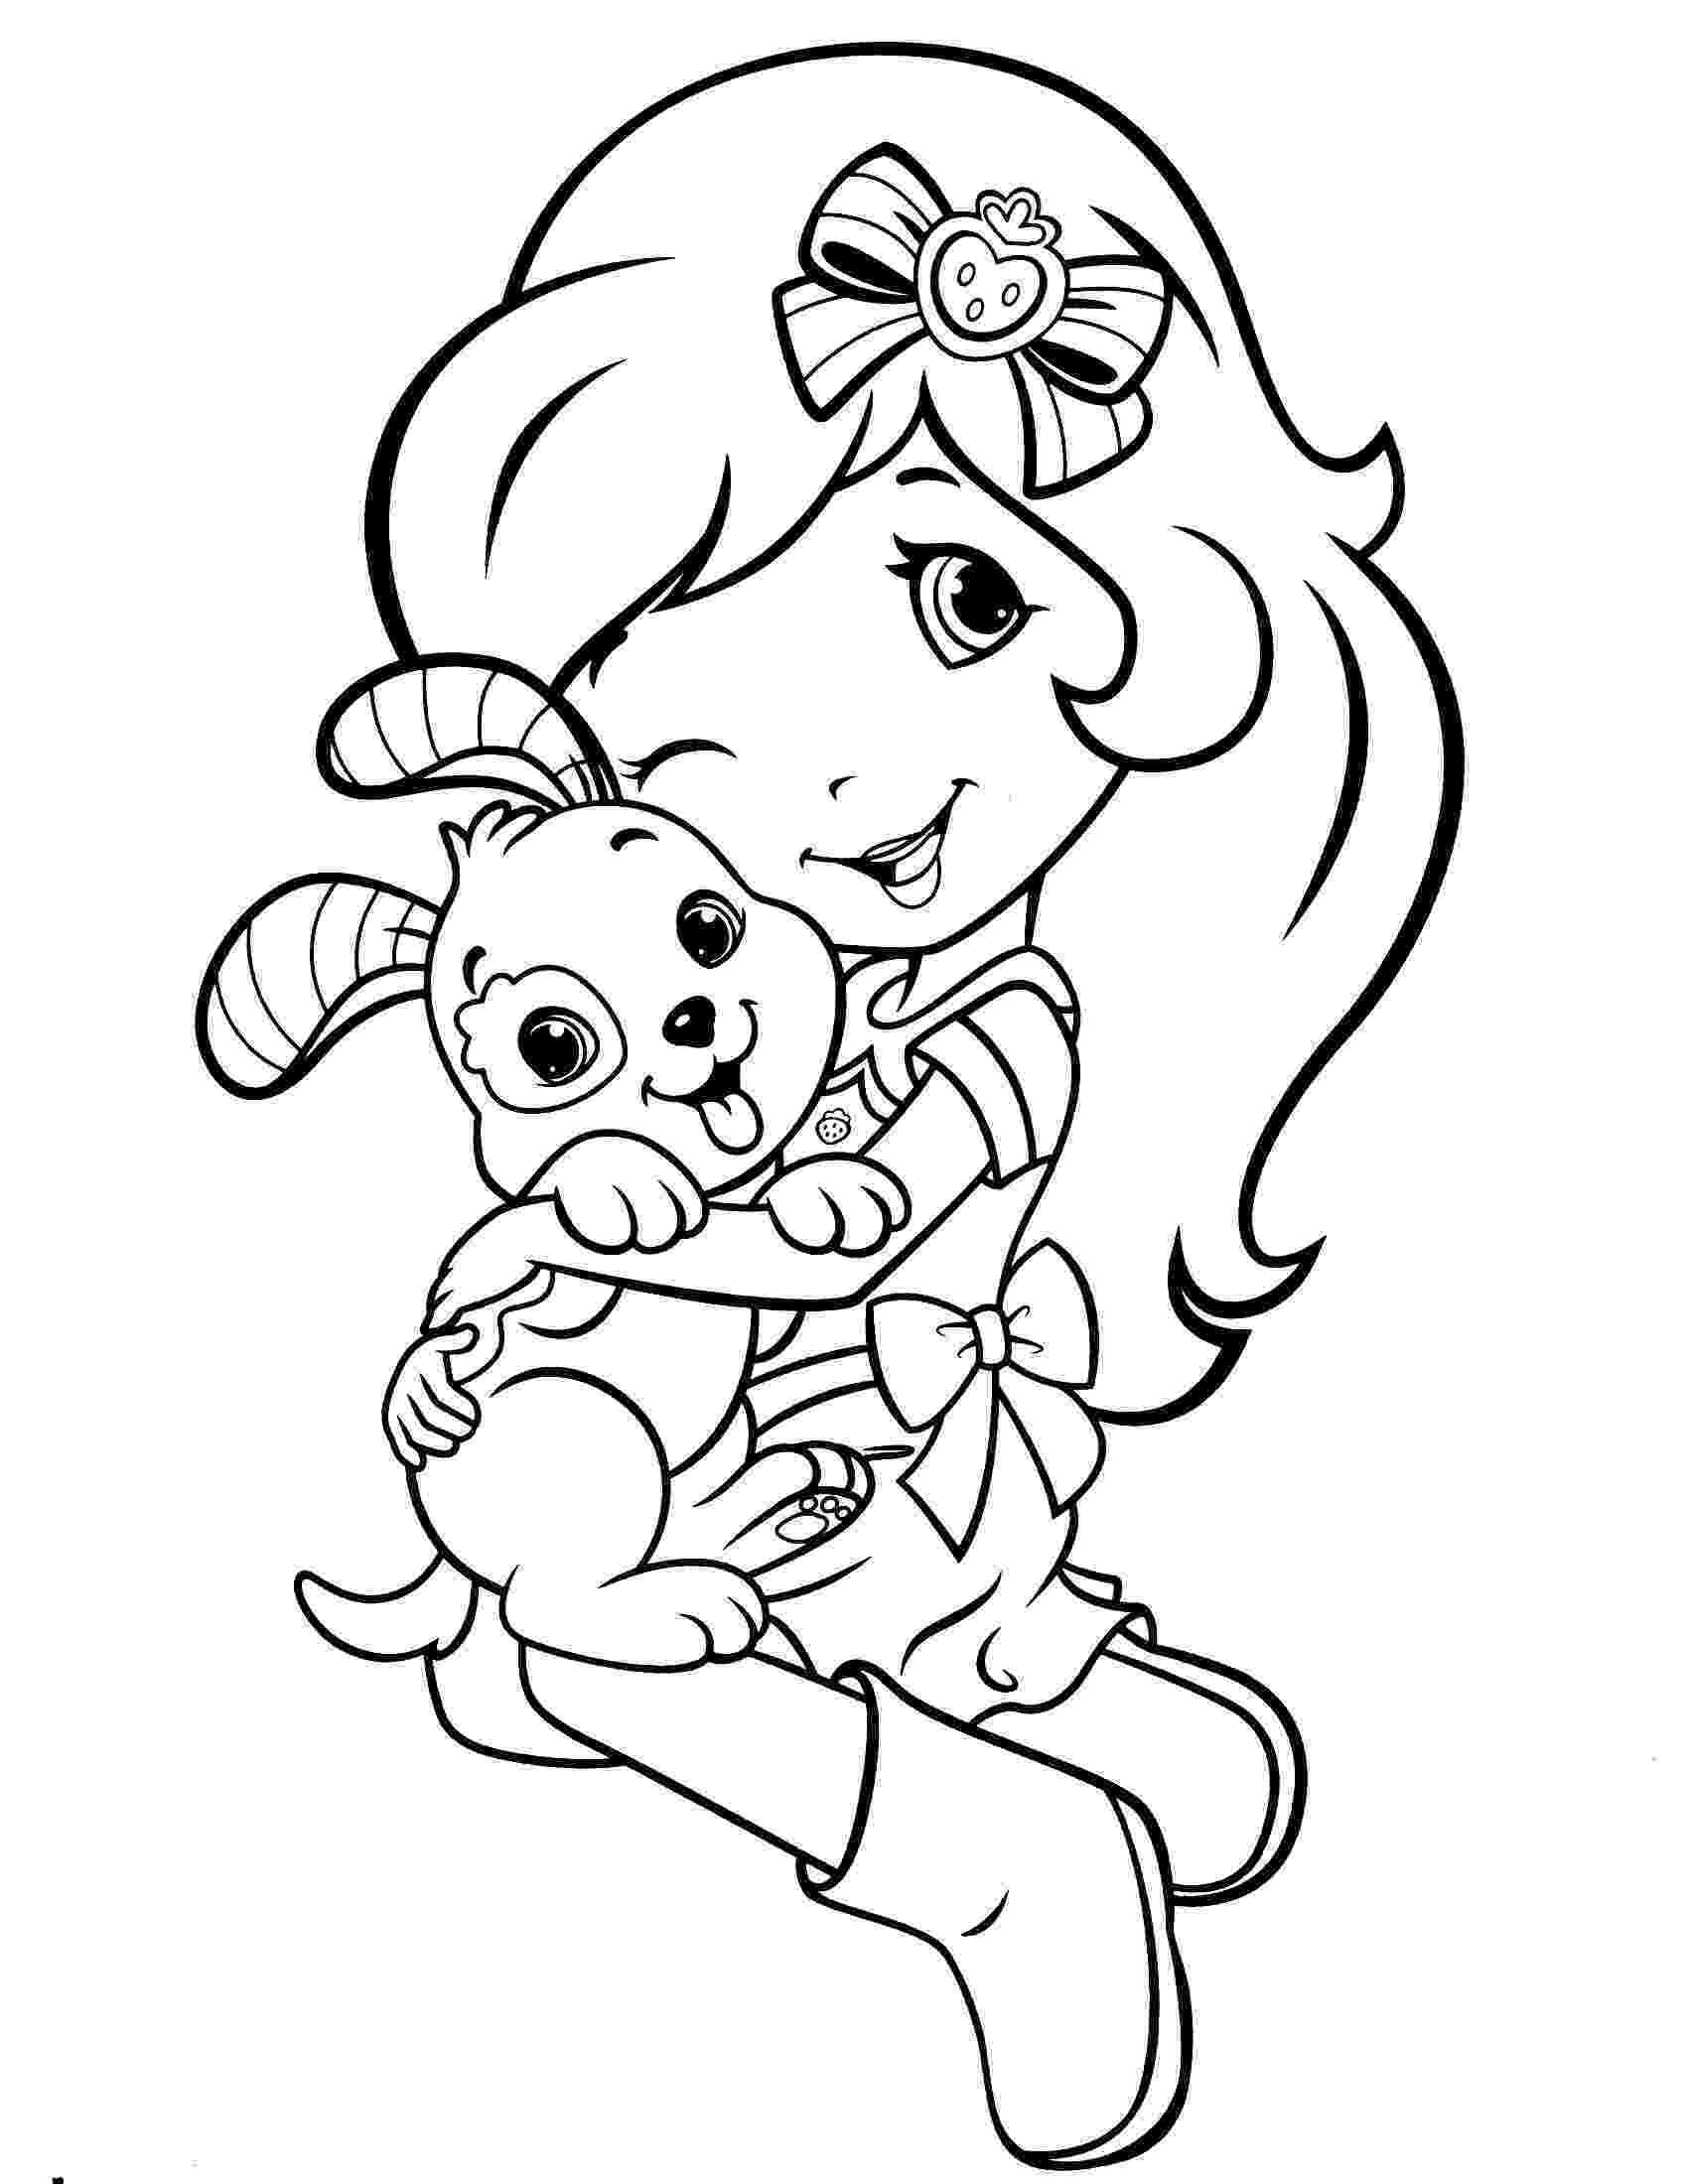 strawberry shortcake coloring pictures strawberry shortcake coloring pages getcoloringpagescom strawberry coloring shortcake pictures